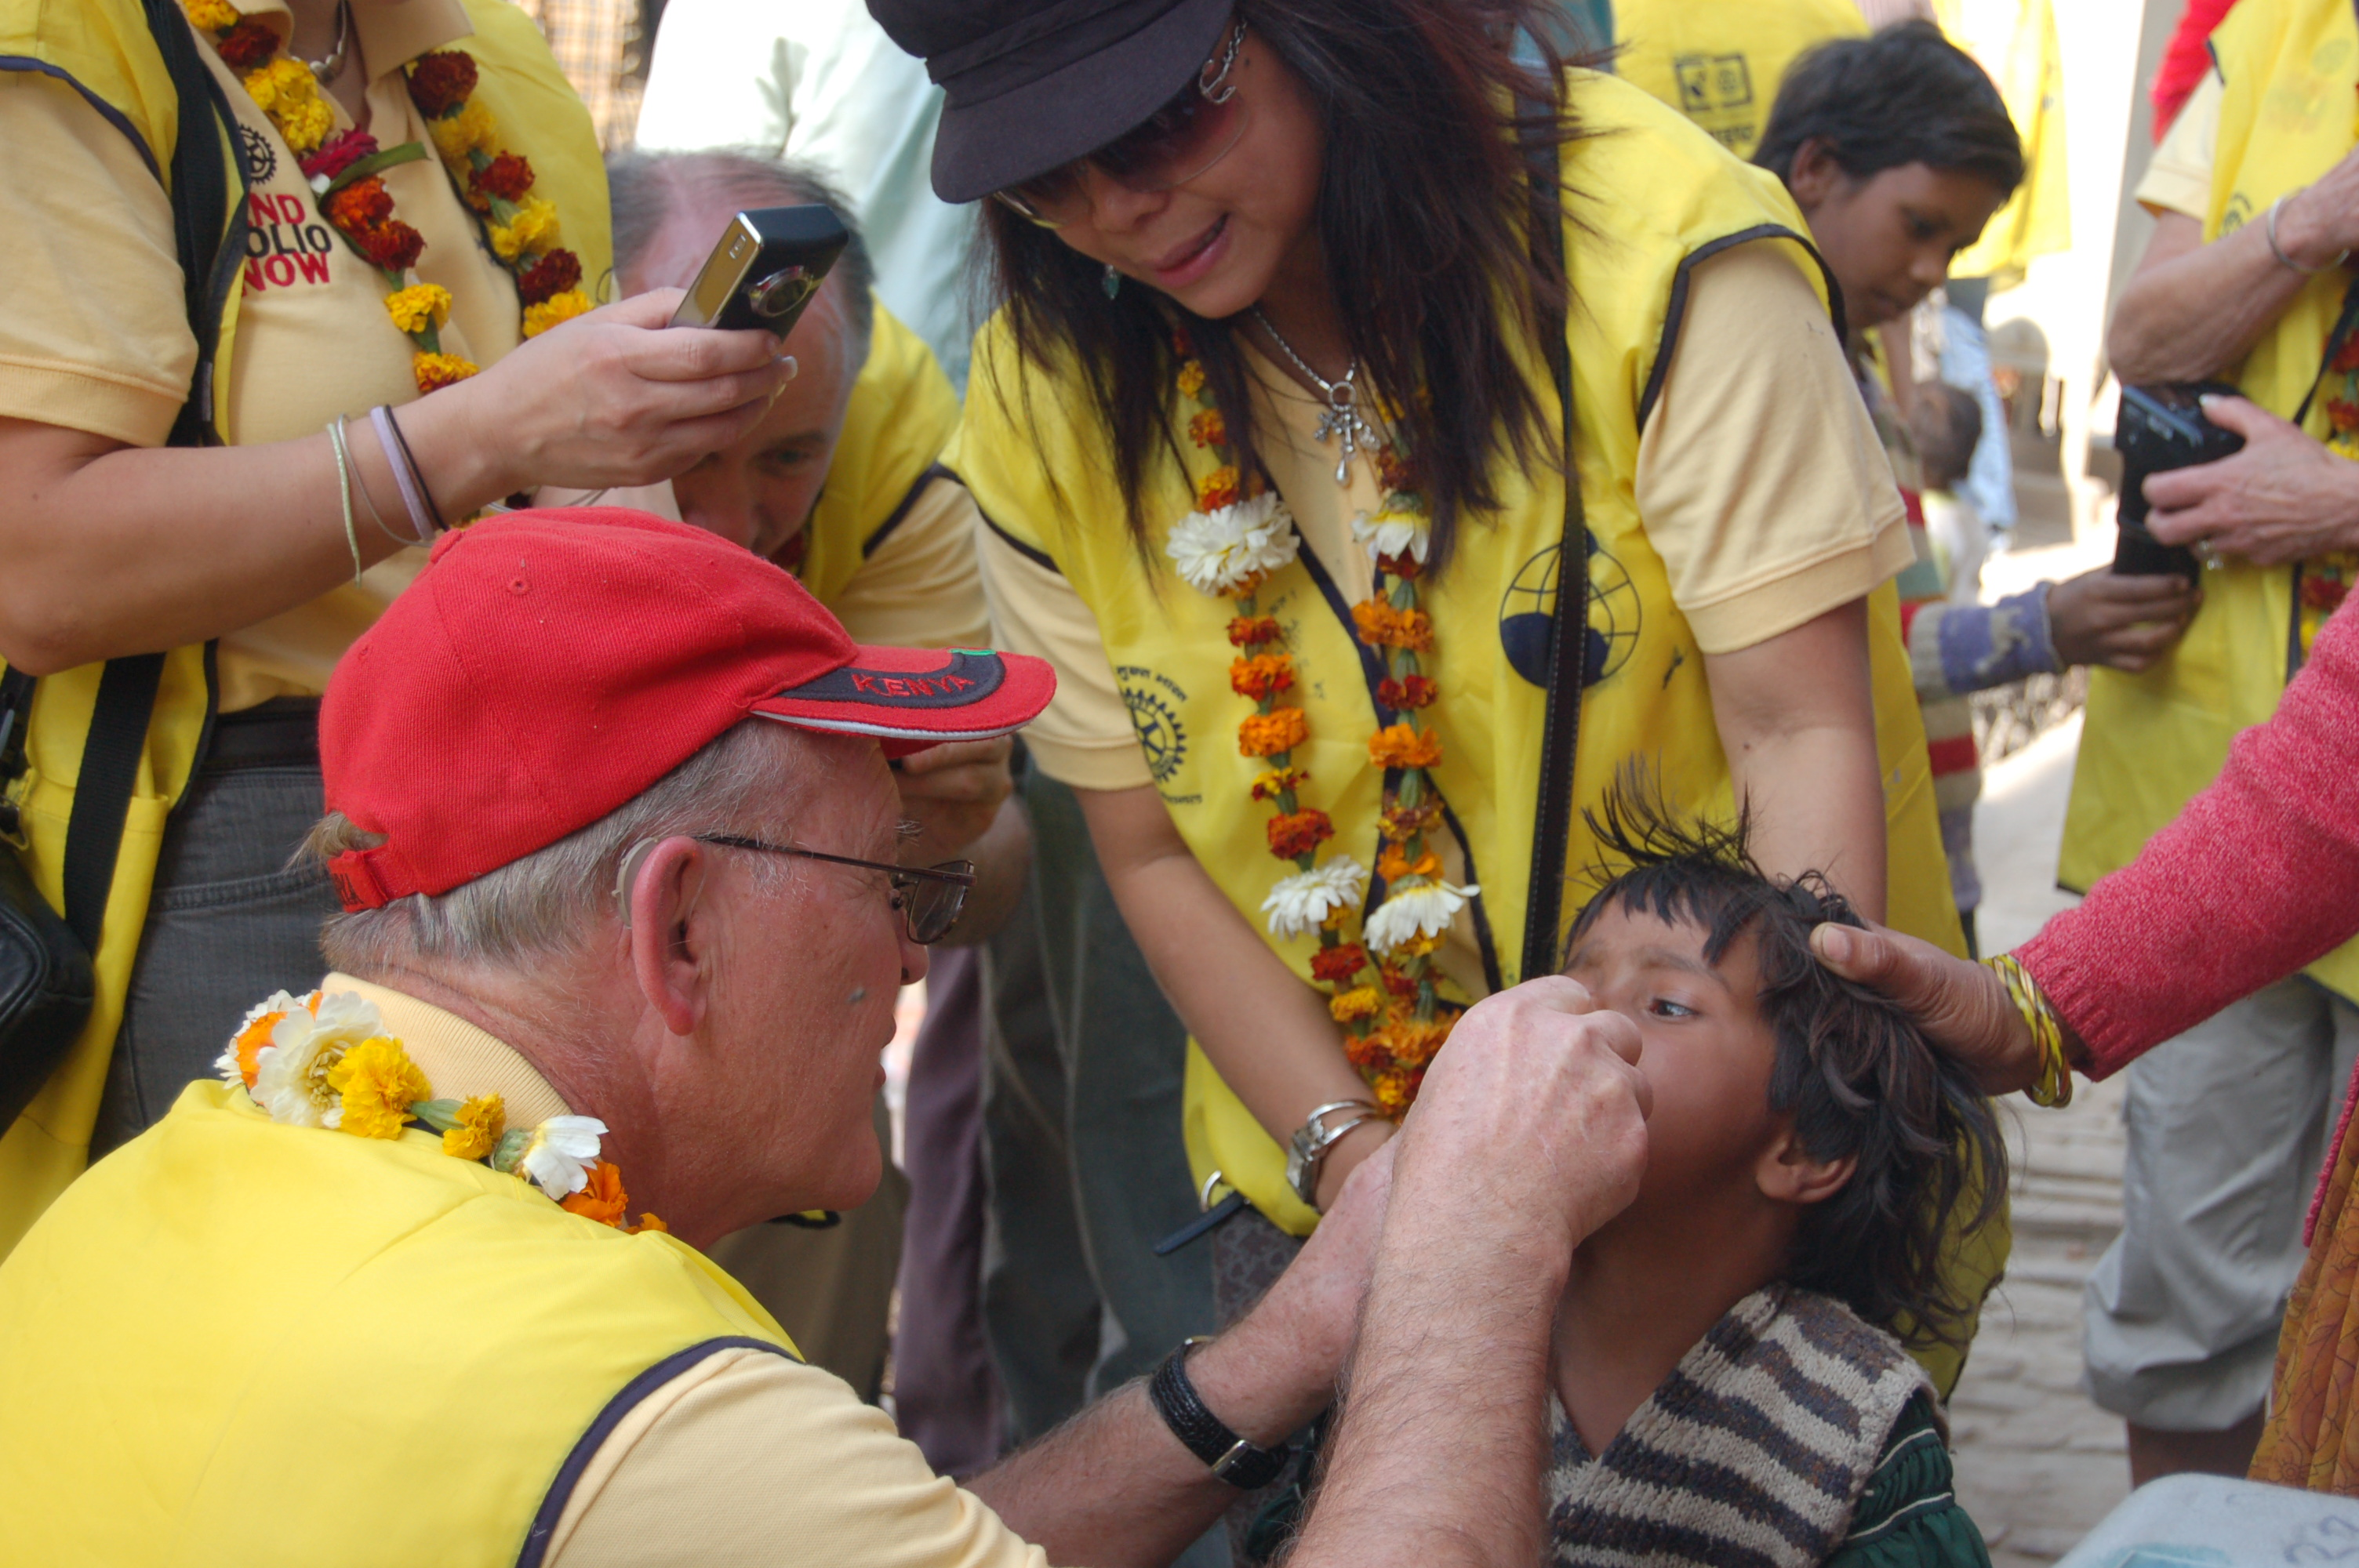 Sugar House Rotary Member, Larry Wright traveled to India to aid in vaccinating children from Polio